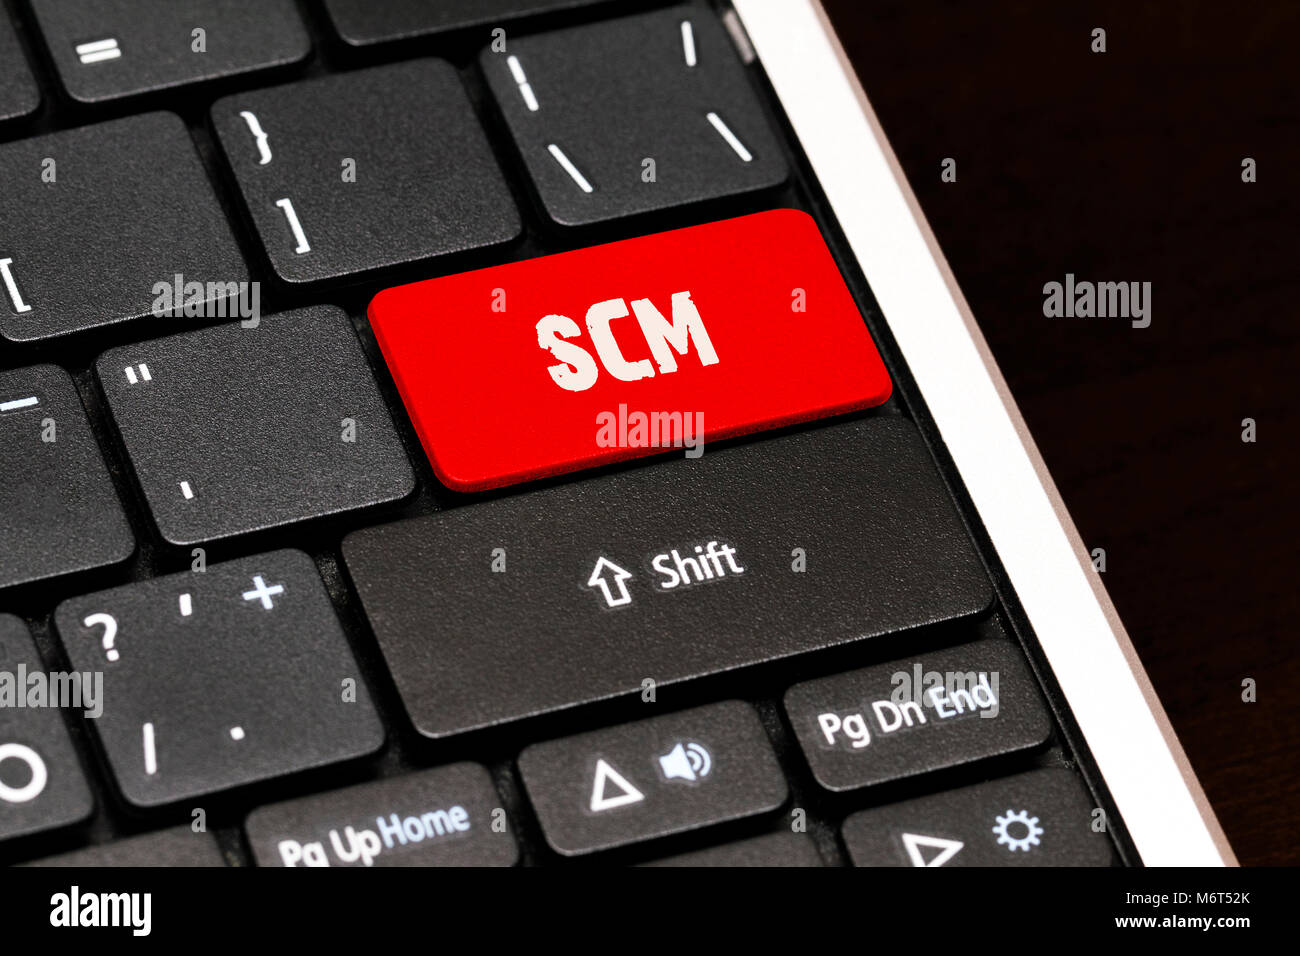 SCM on Red Enter Button on black keyboard. Stock Photo